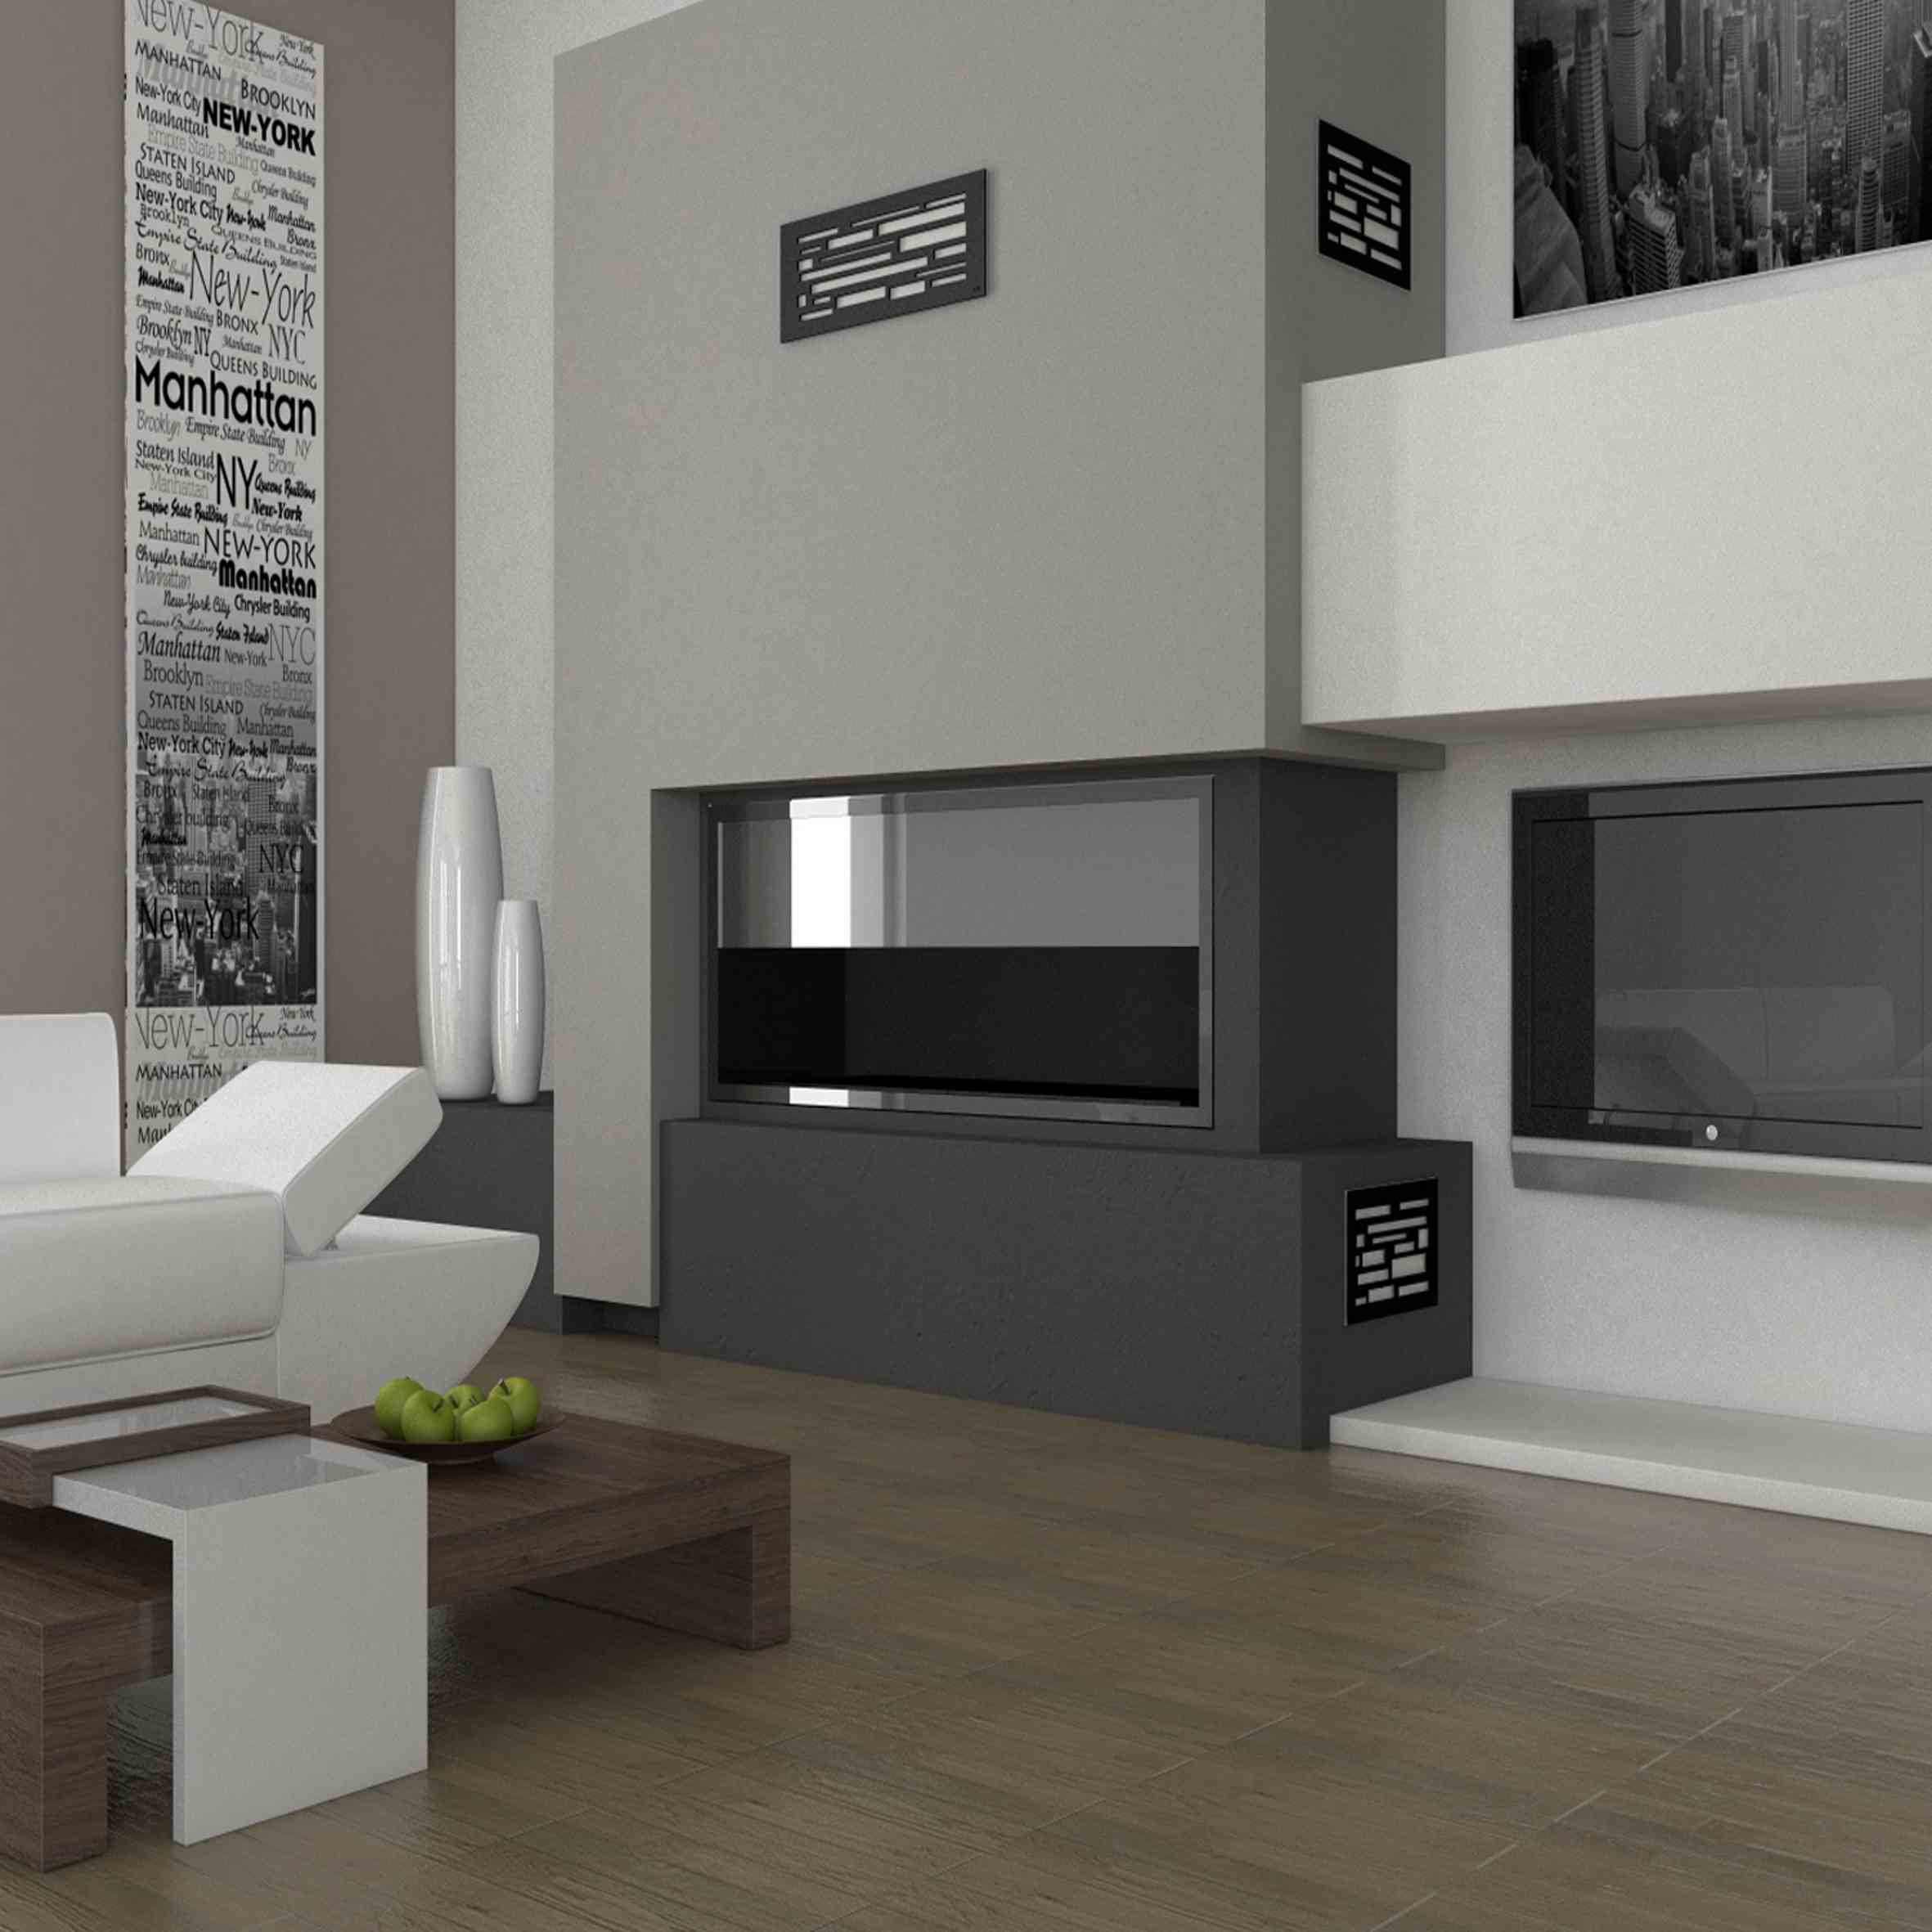 sublimez vos chemin es avec des grilles d coratives. Black Bedroom Furniture Sets. Home Design Ideas